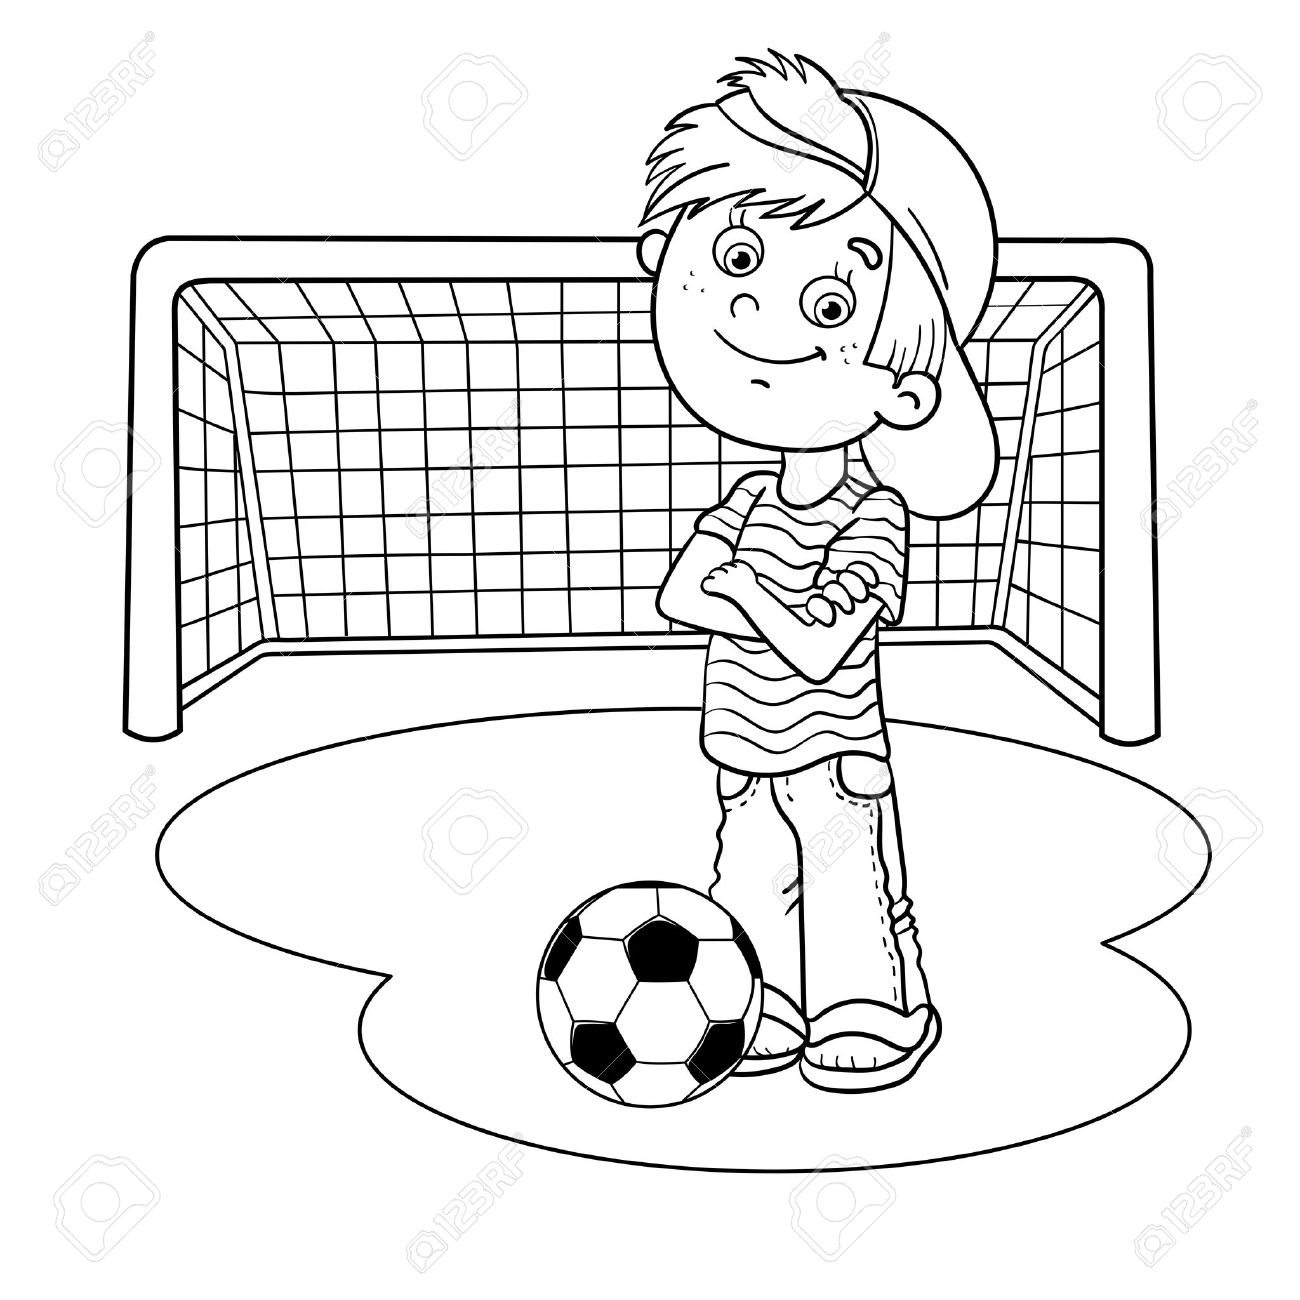 Football drawing template forteforic recent posts maxwellsz